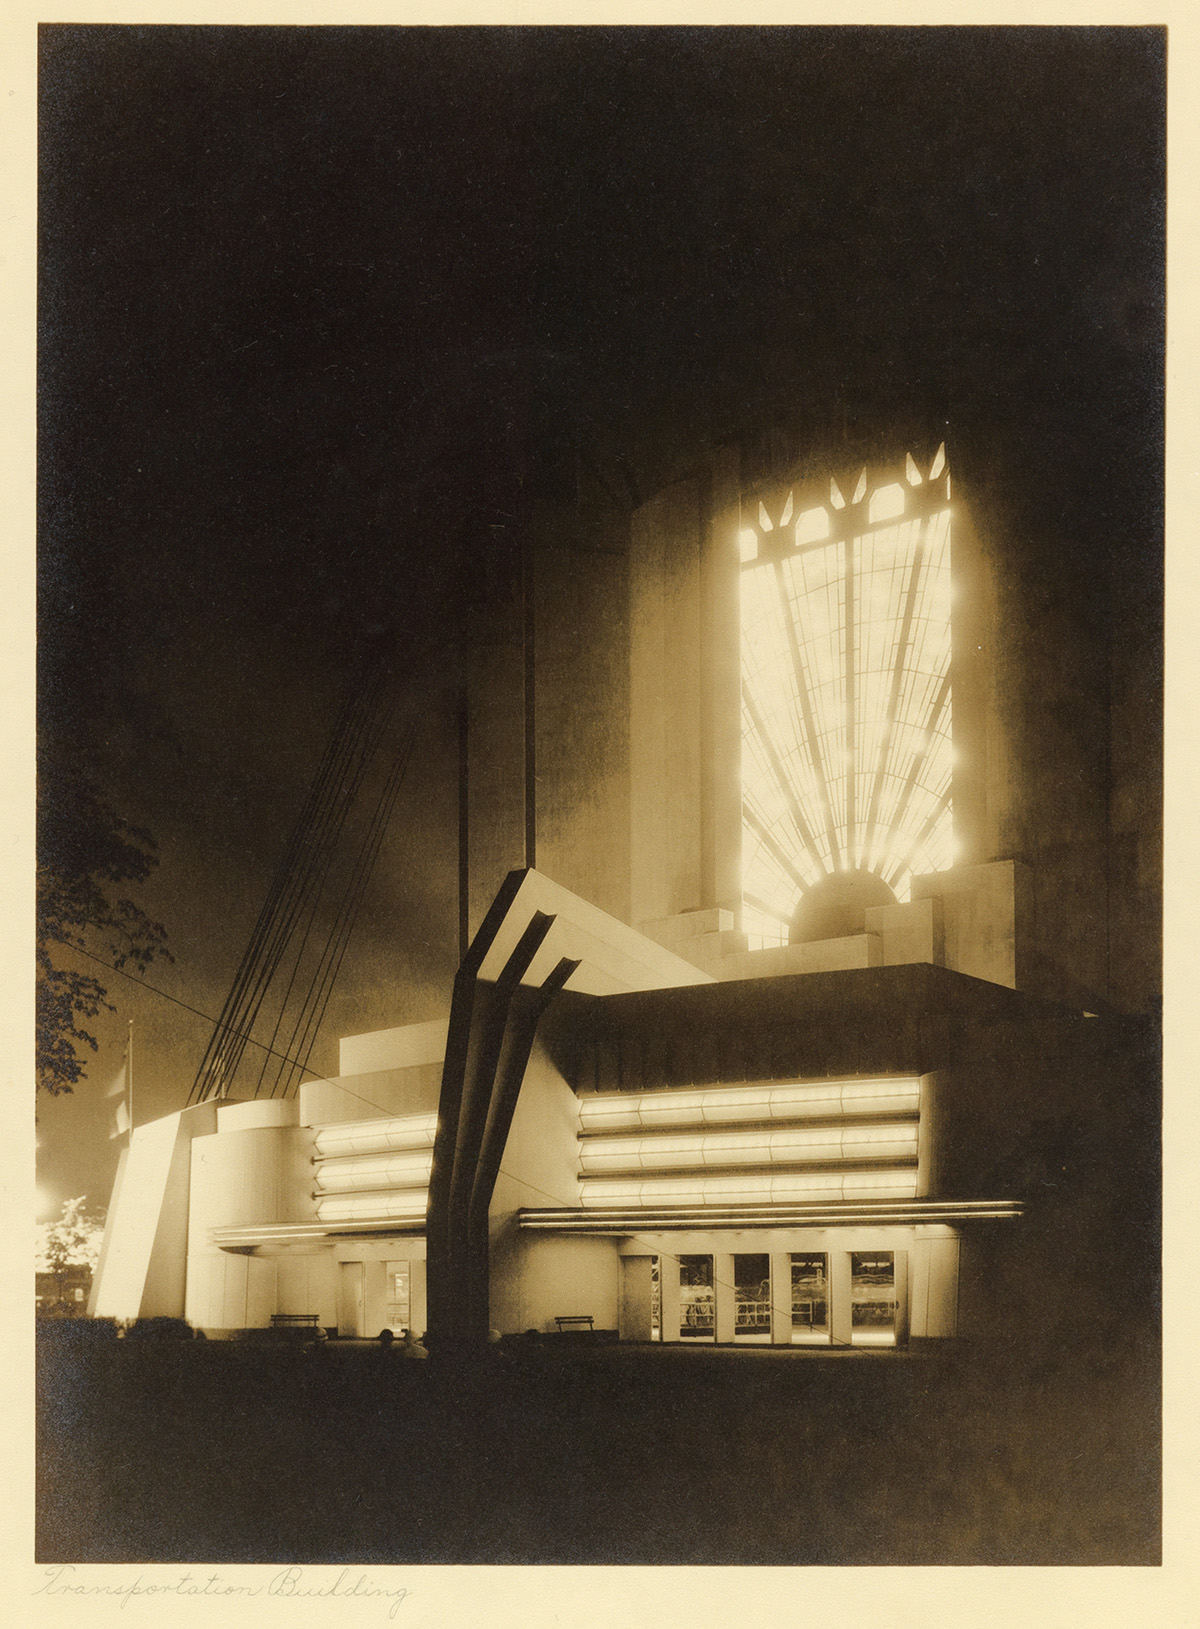 (CHICAGO WORLDS FAIR--KAUFMANN & FABRY) A group of 24 select modernist scenes of the splendid structures displayed throughout the Chic